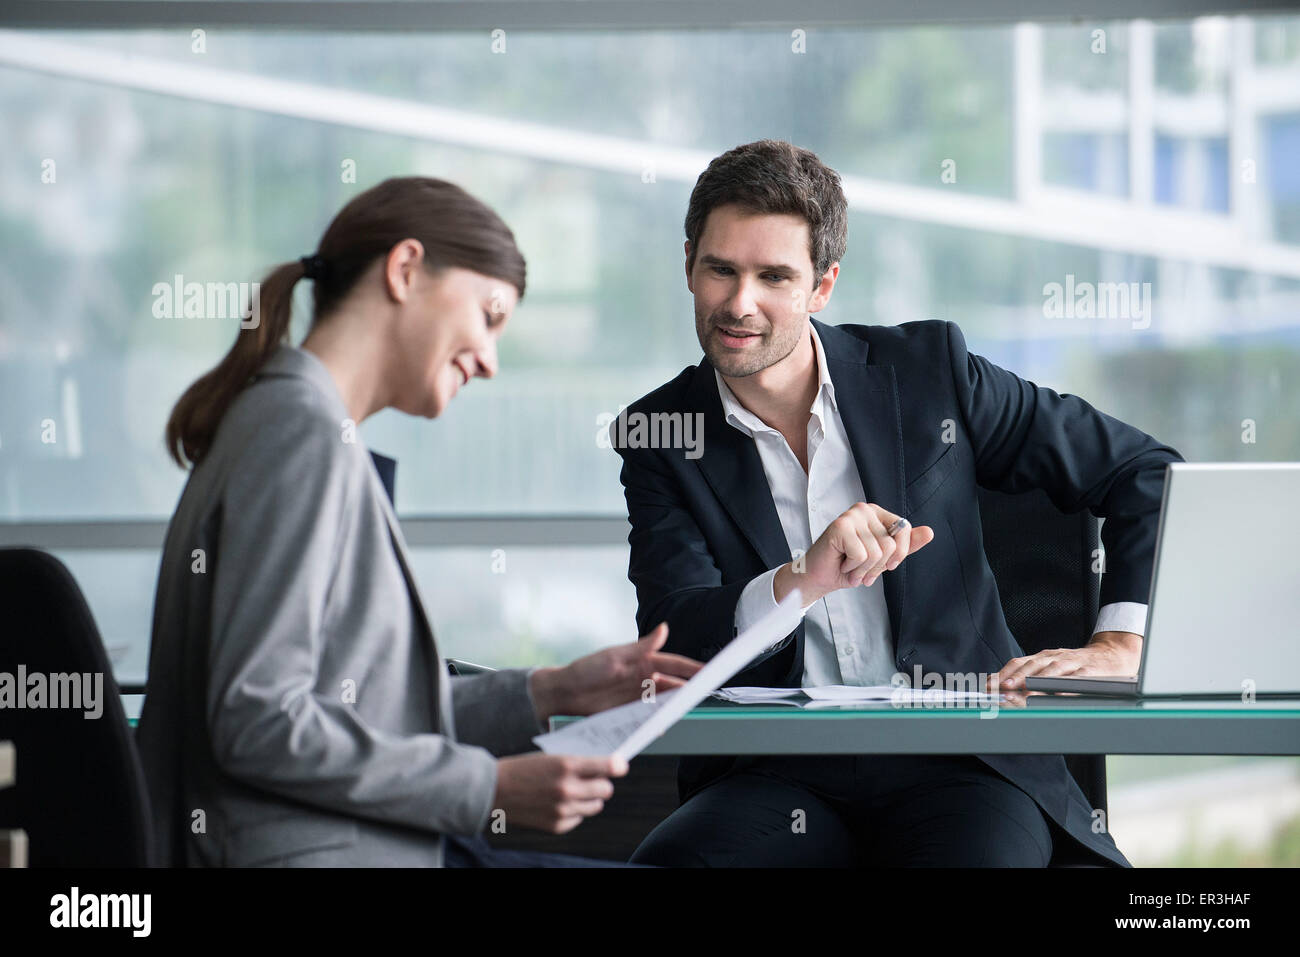 Financial advisor meeting with satisfied investor - Stock Image